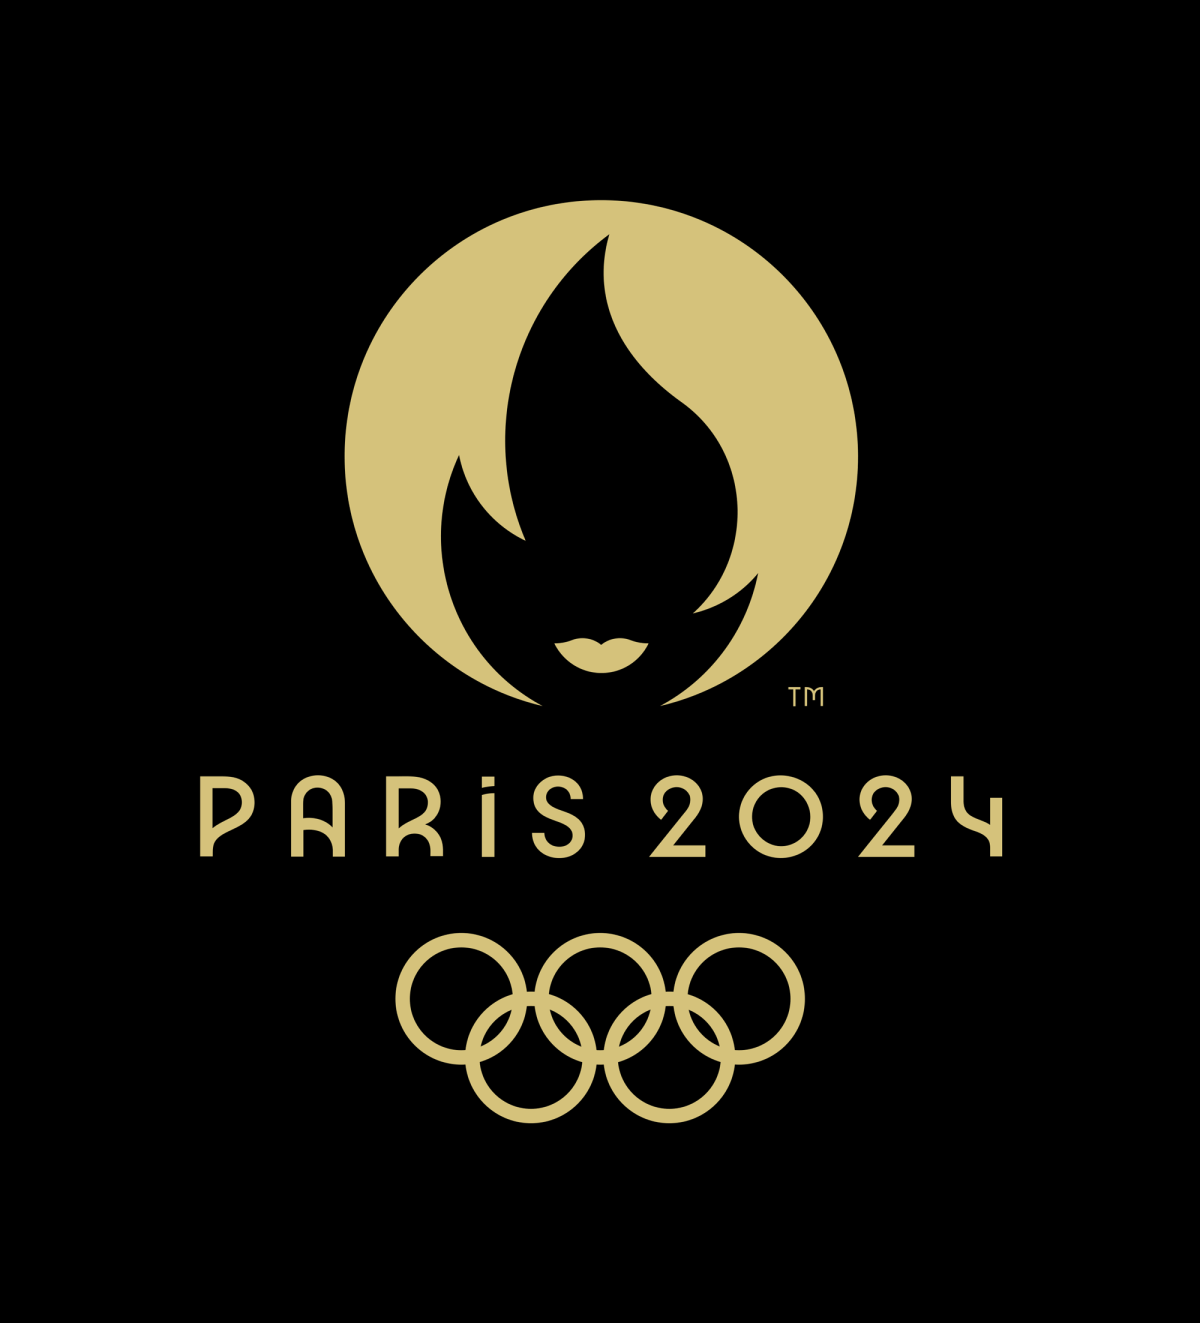 paris2024_official_logo